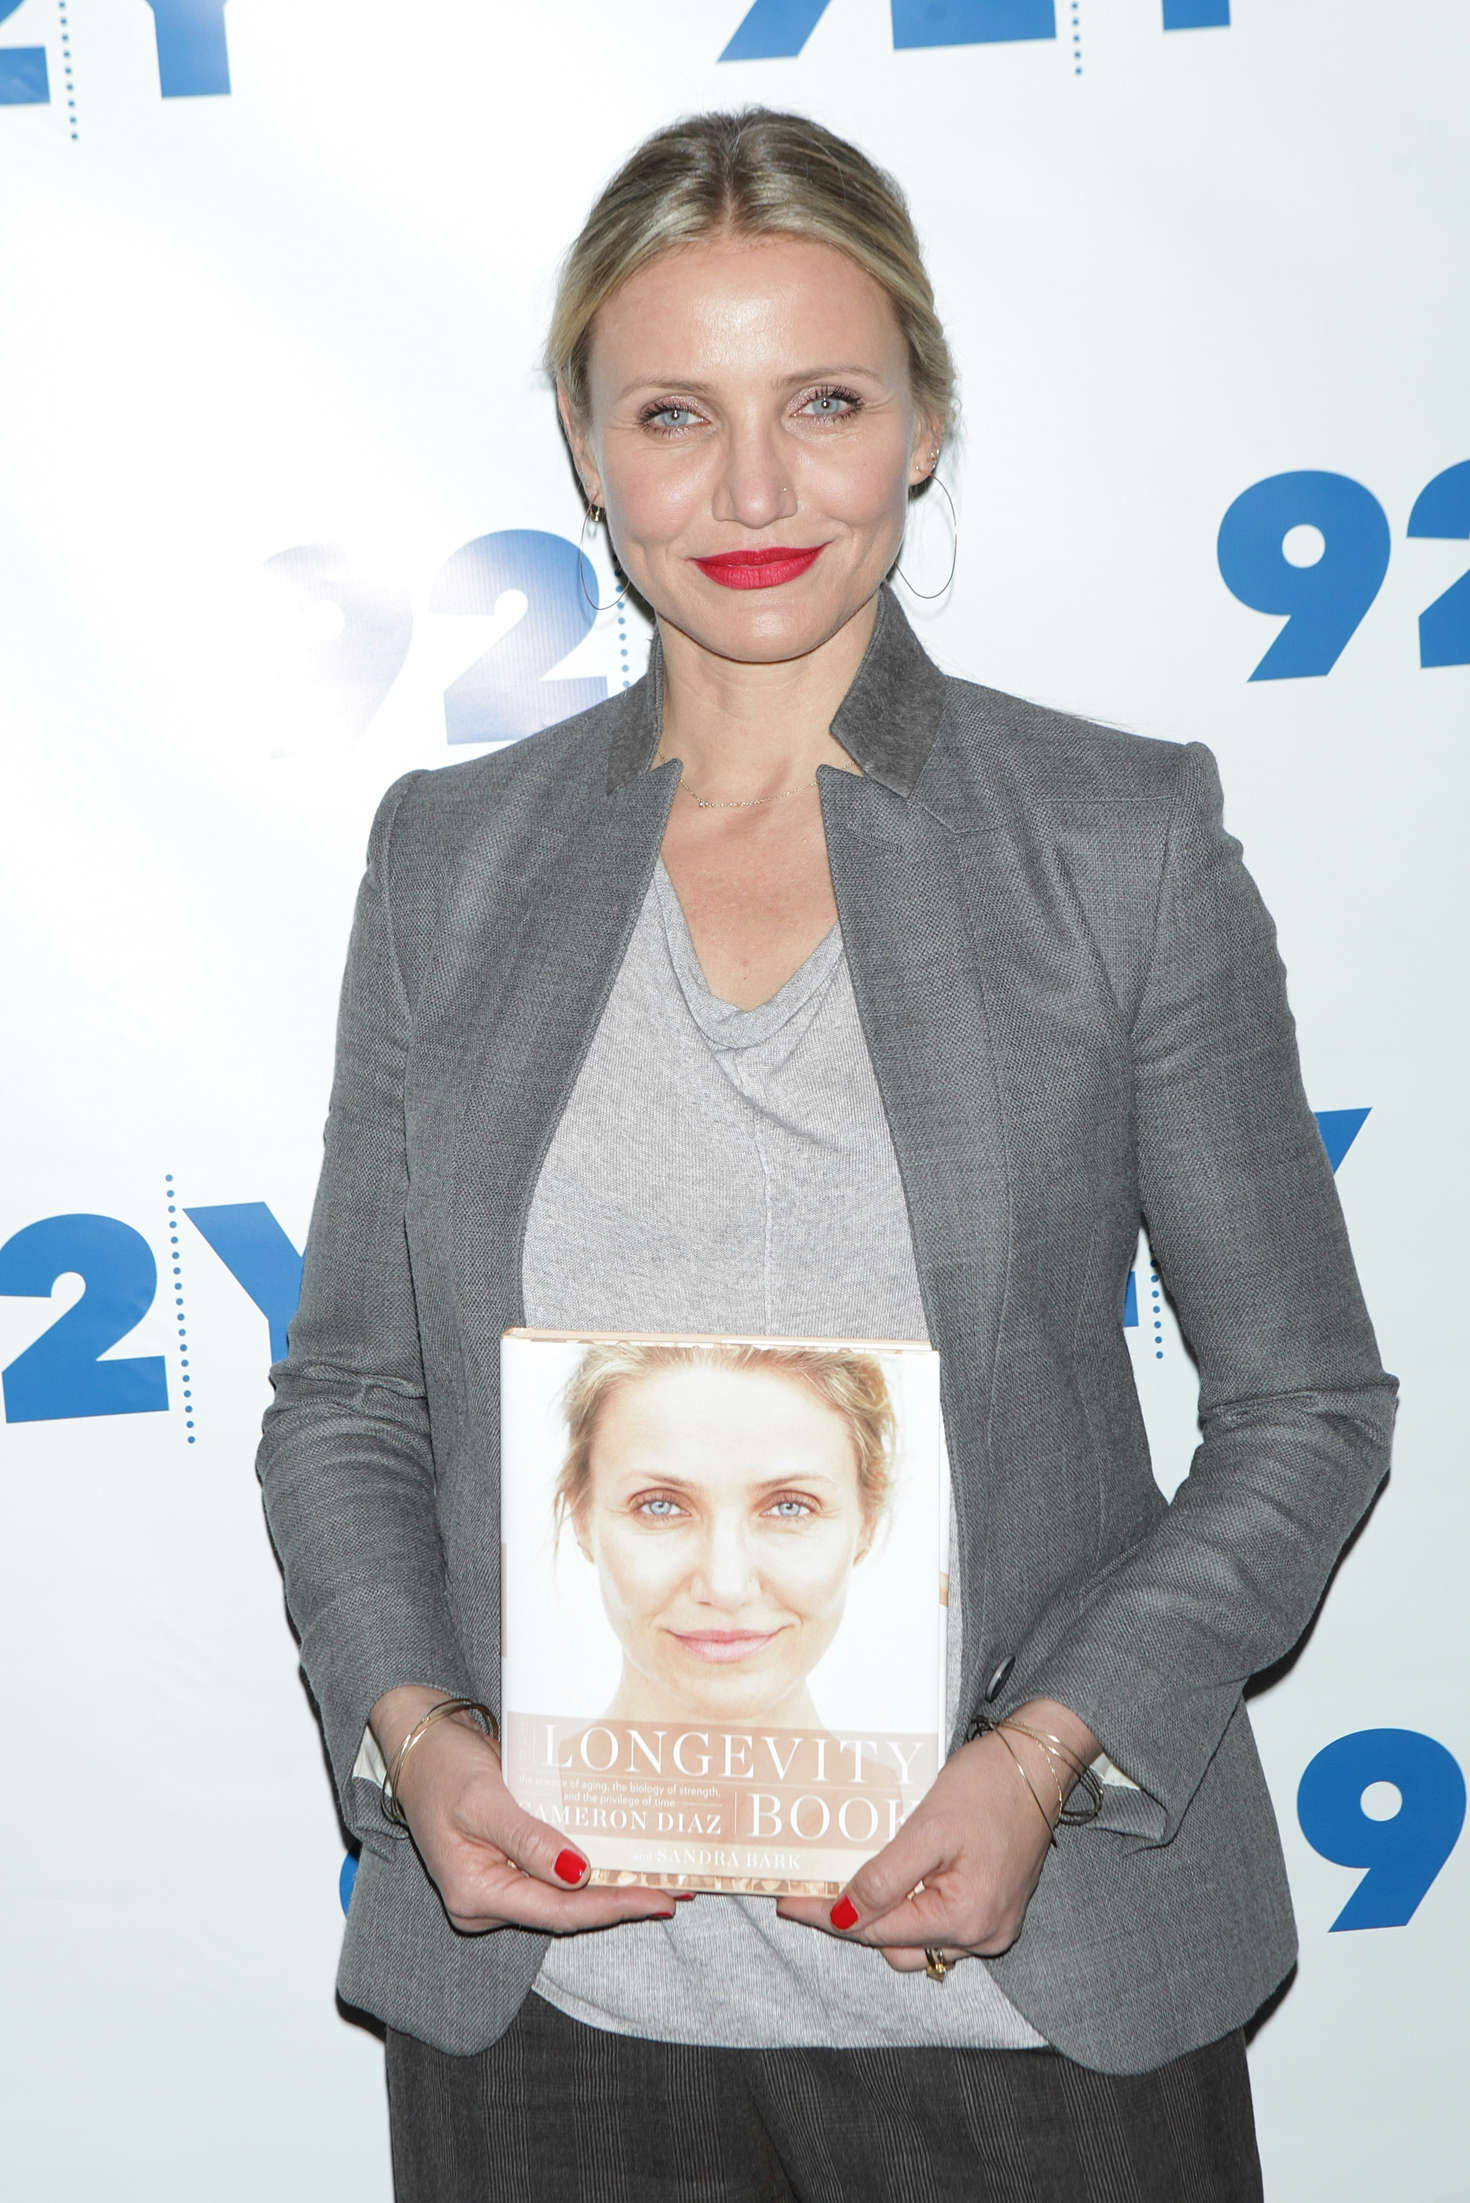 Cameron Diaz - Promotes 'The Longevity Book' at 92Y in New York